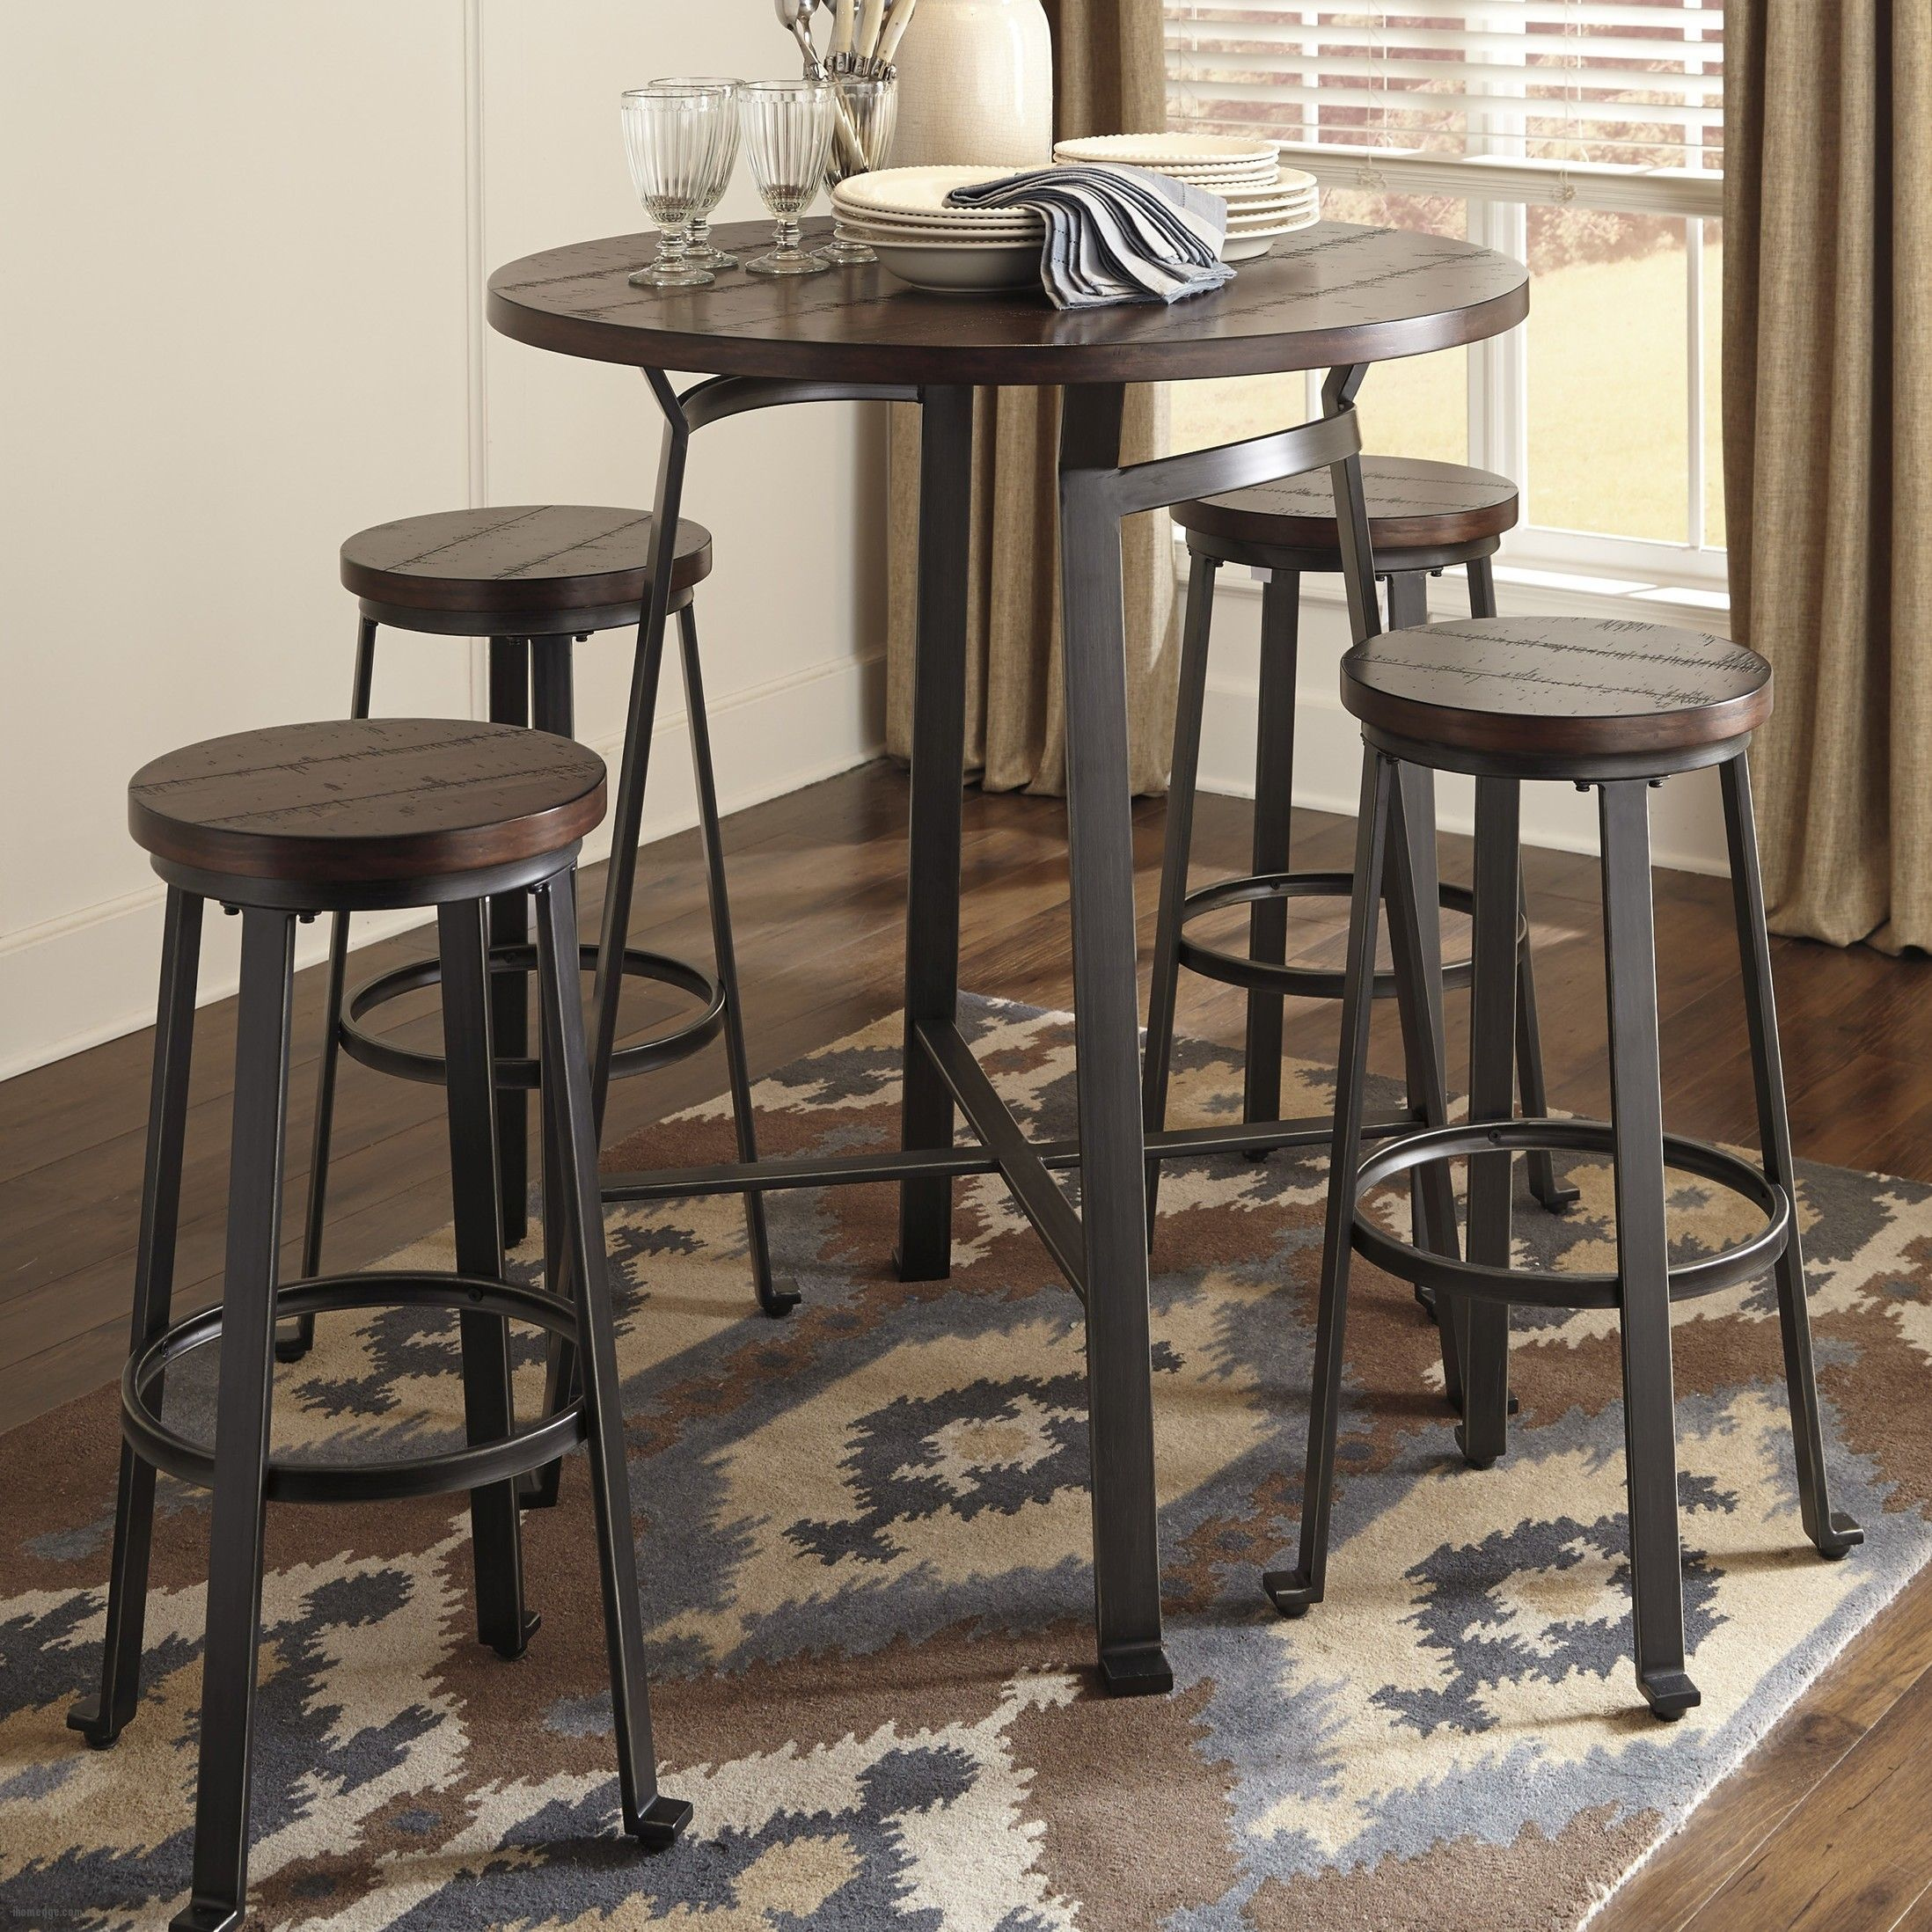 gallery photos with chairs exterior style on table of tables kitchen pub contemporary and new